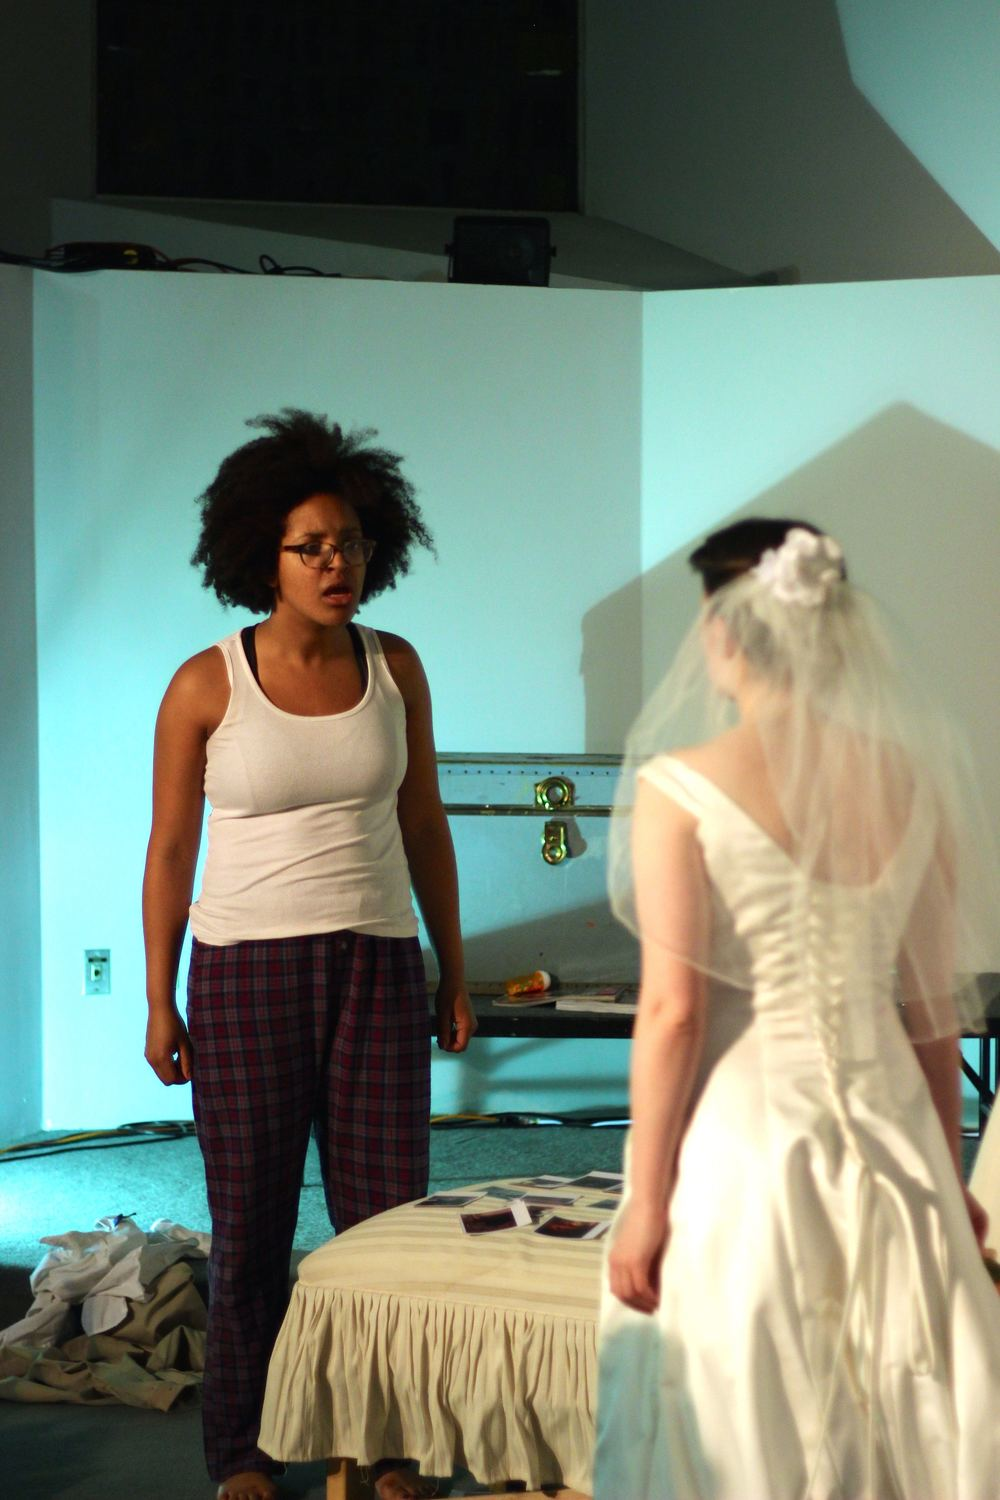 Shanae Burch as Electra and Melody Martin as Iphigenia